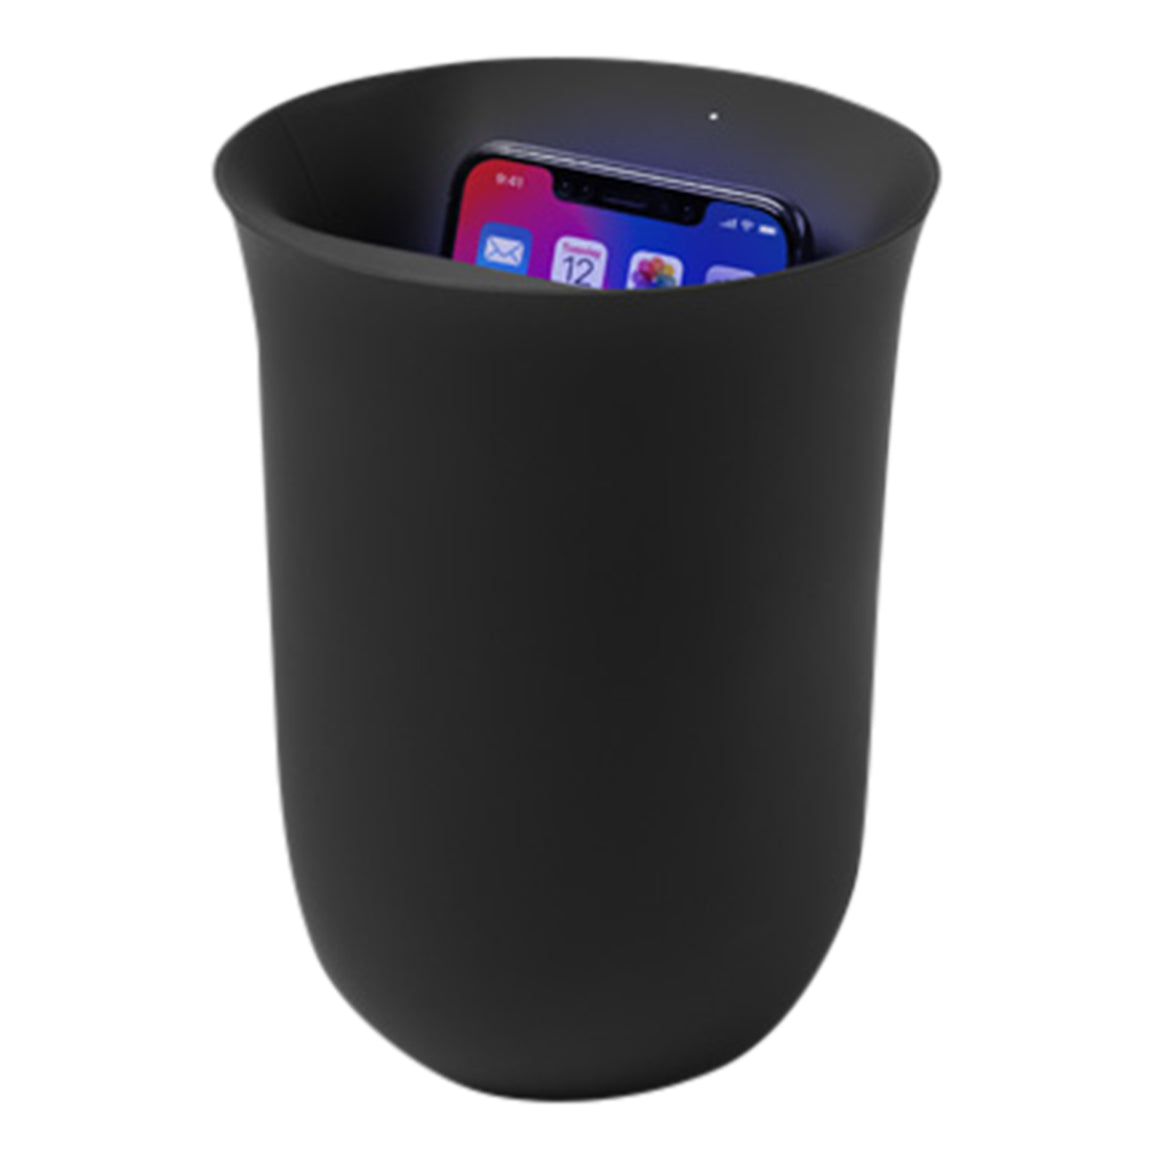 Wireless Charger & UV Santiser in Black